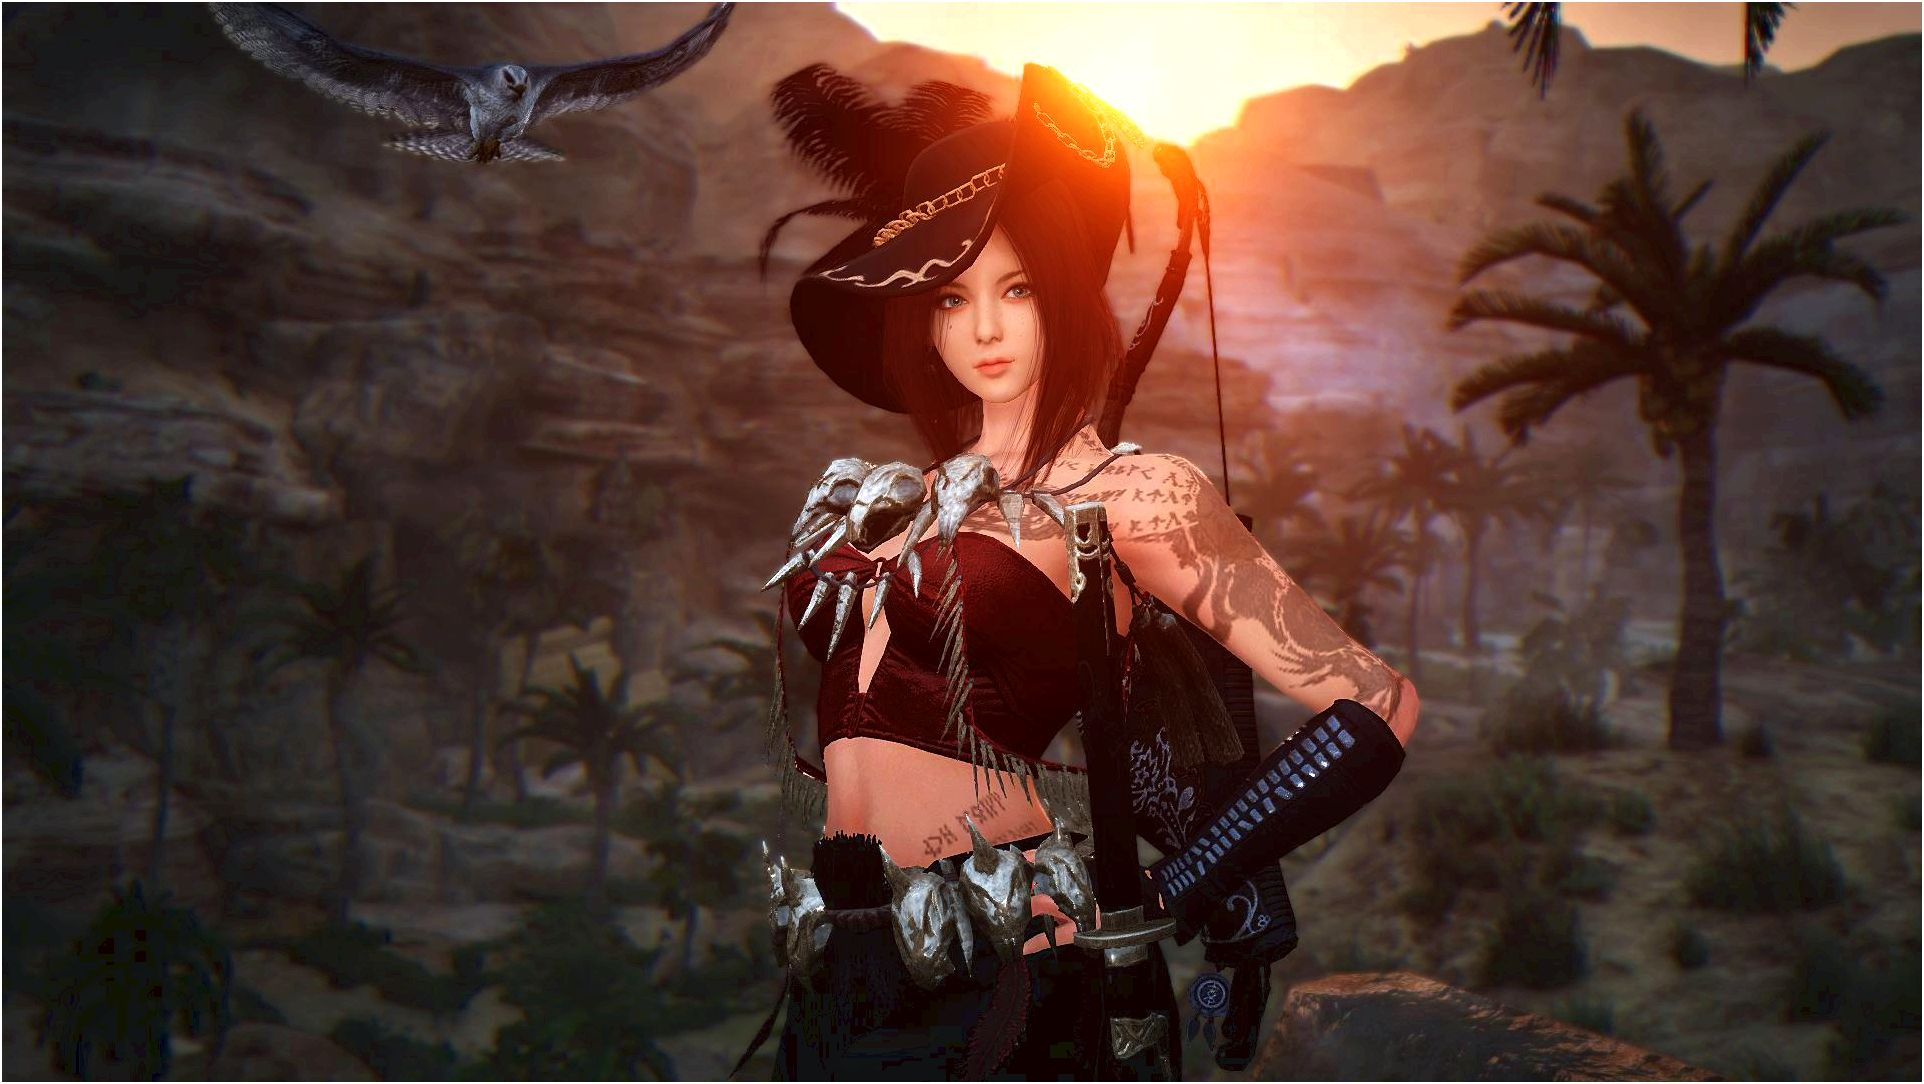 Black desert online – help guide to all classes | DozaGames